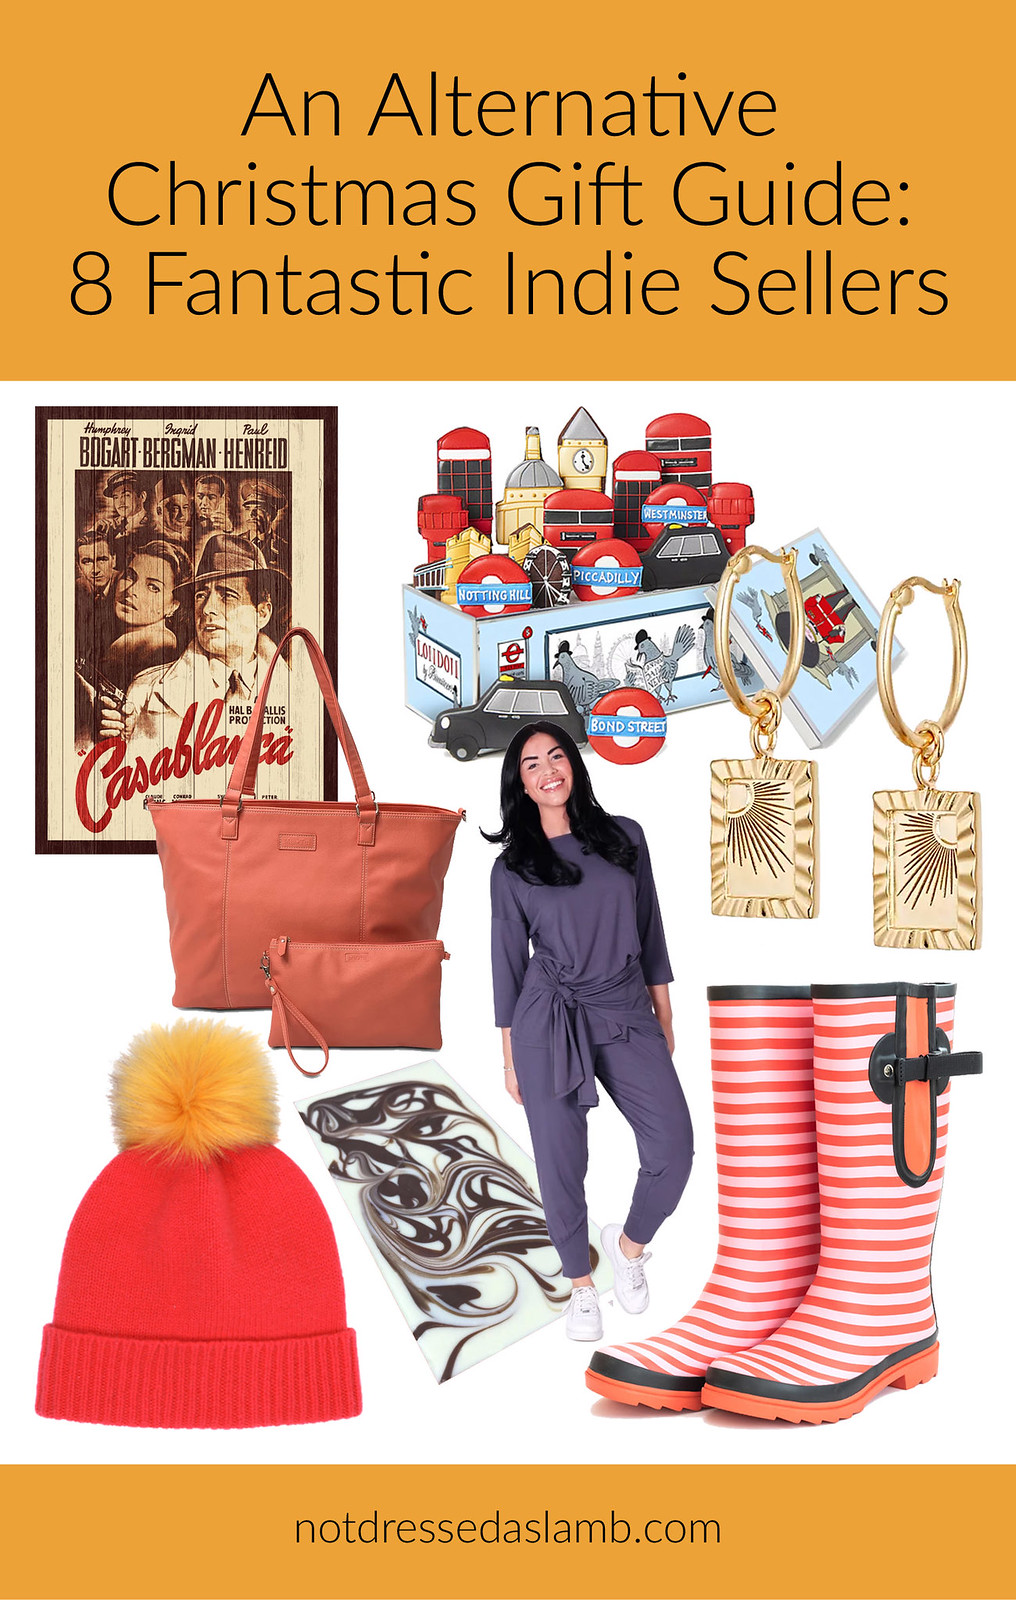 An Alternative Christmas Gift Guide: 8 Fantastic Indie Sellers by Not Dressed As Lamb